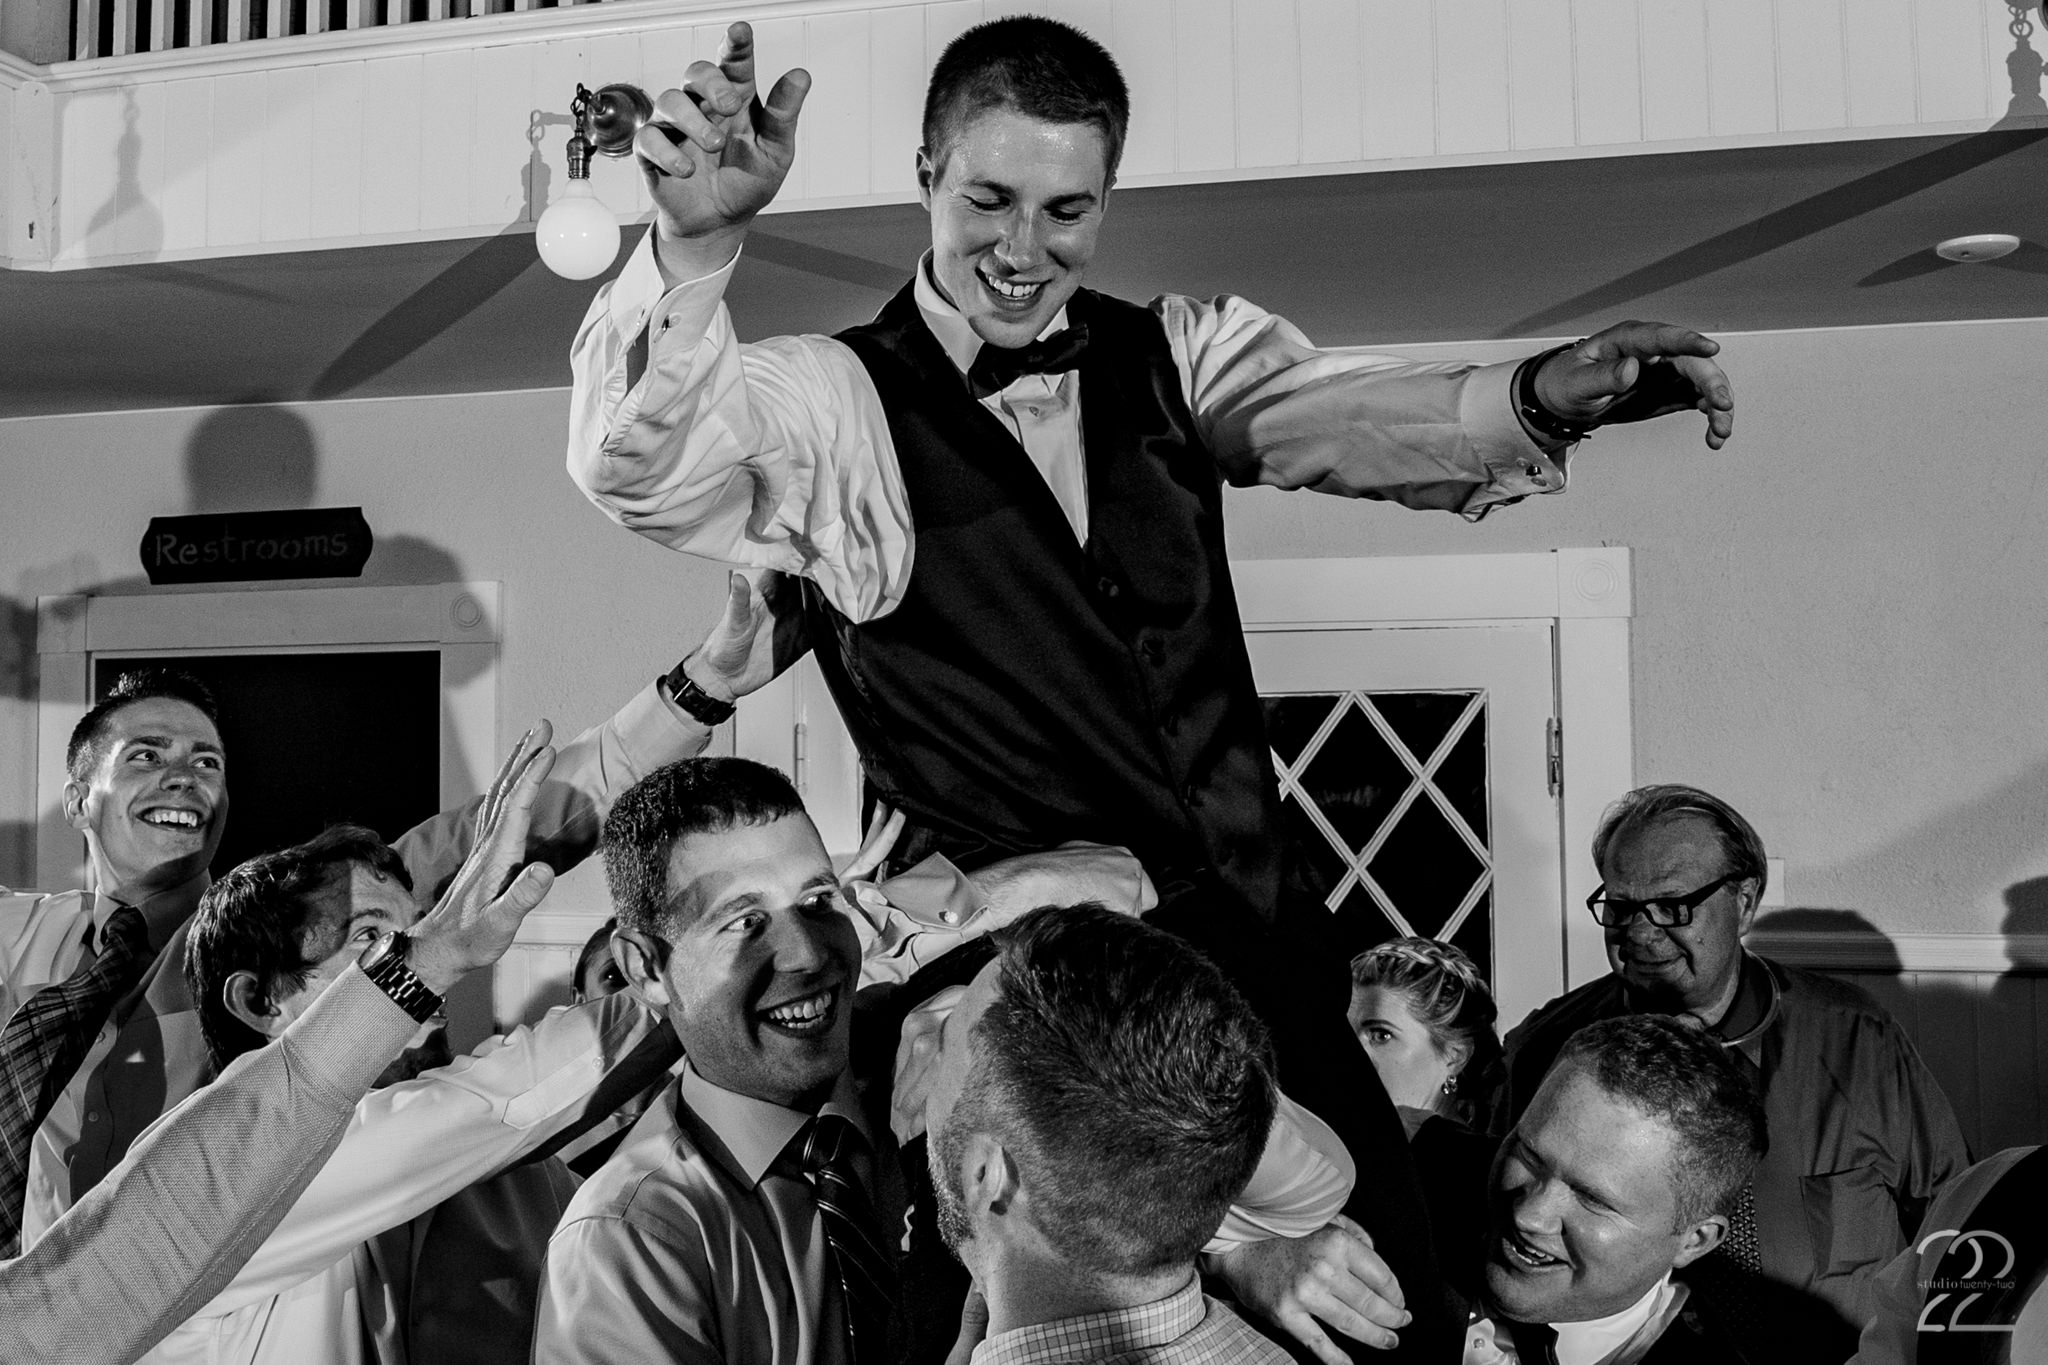 A wedding can have great music and food but epic friends and family are what make it a night to remember! This Maine wedding at the York Golf & Tennis Club will be one to remember for years.